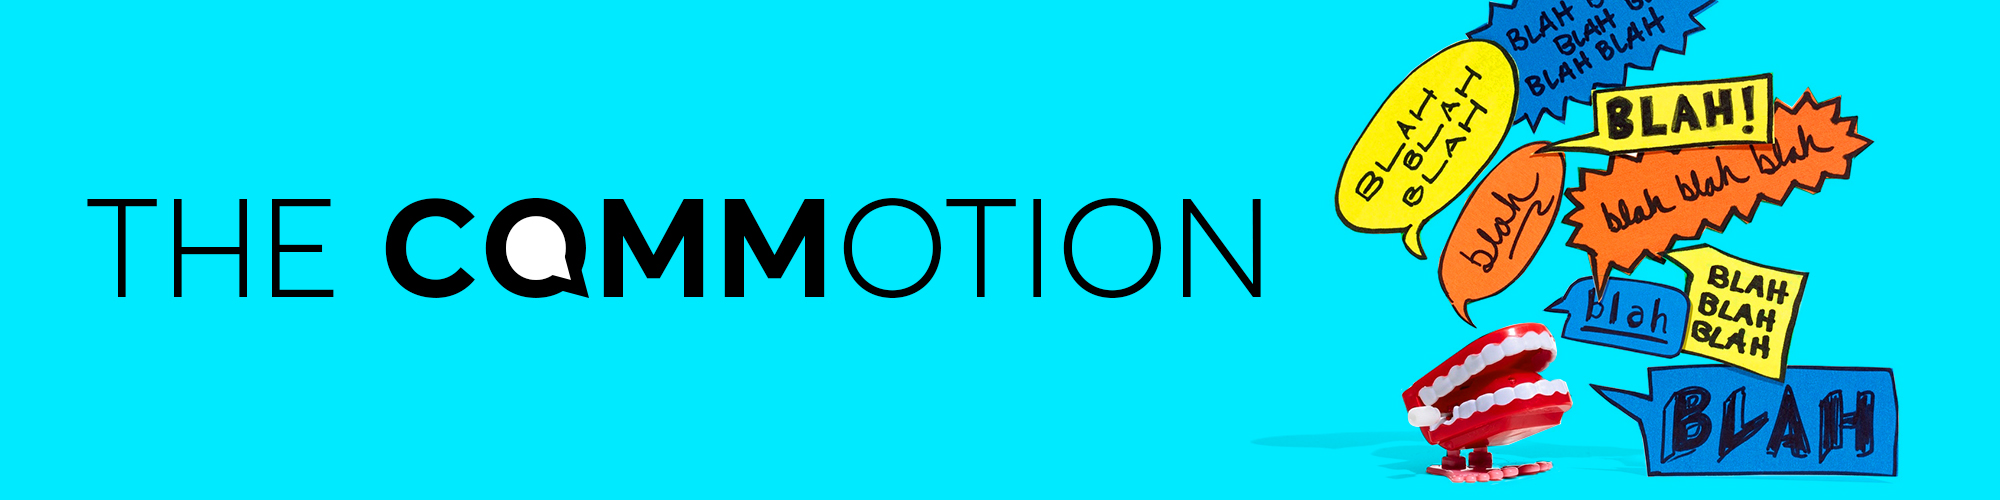 Commotion_header4.jpg